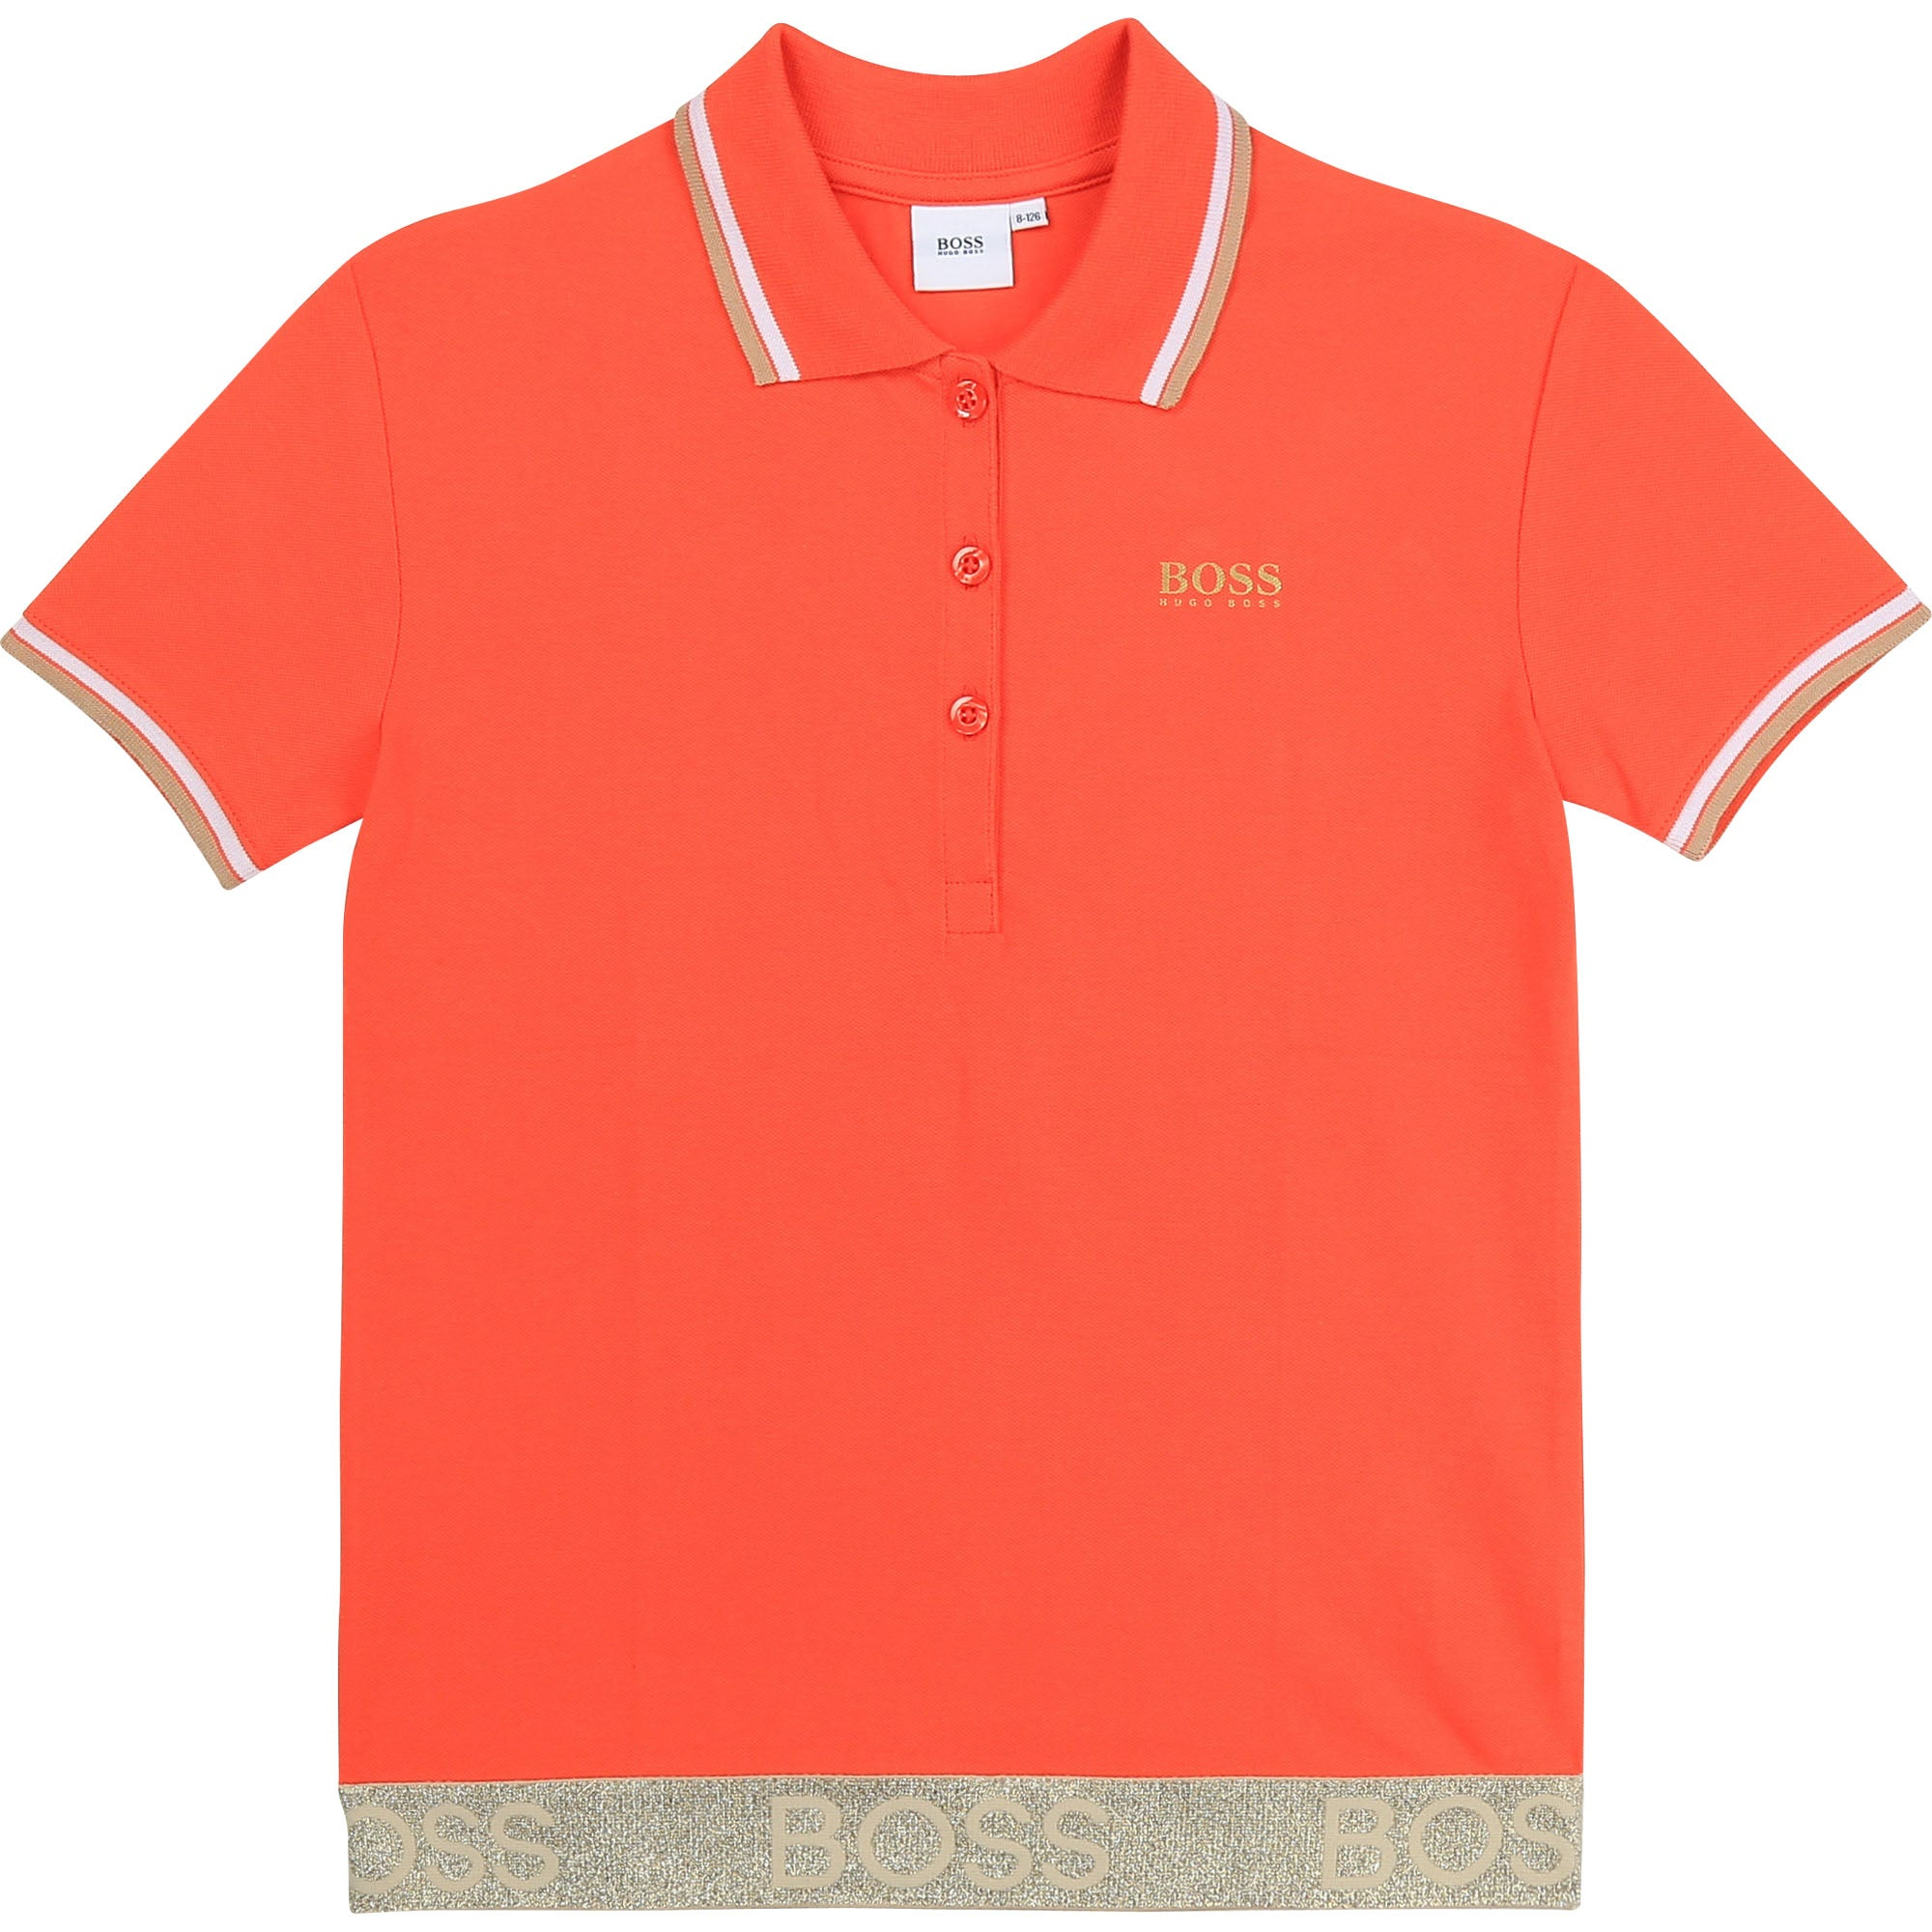 HUGO BOSS J15427 GIRLS SHORT SLEEVE POLO PEACH